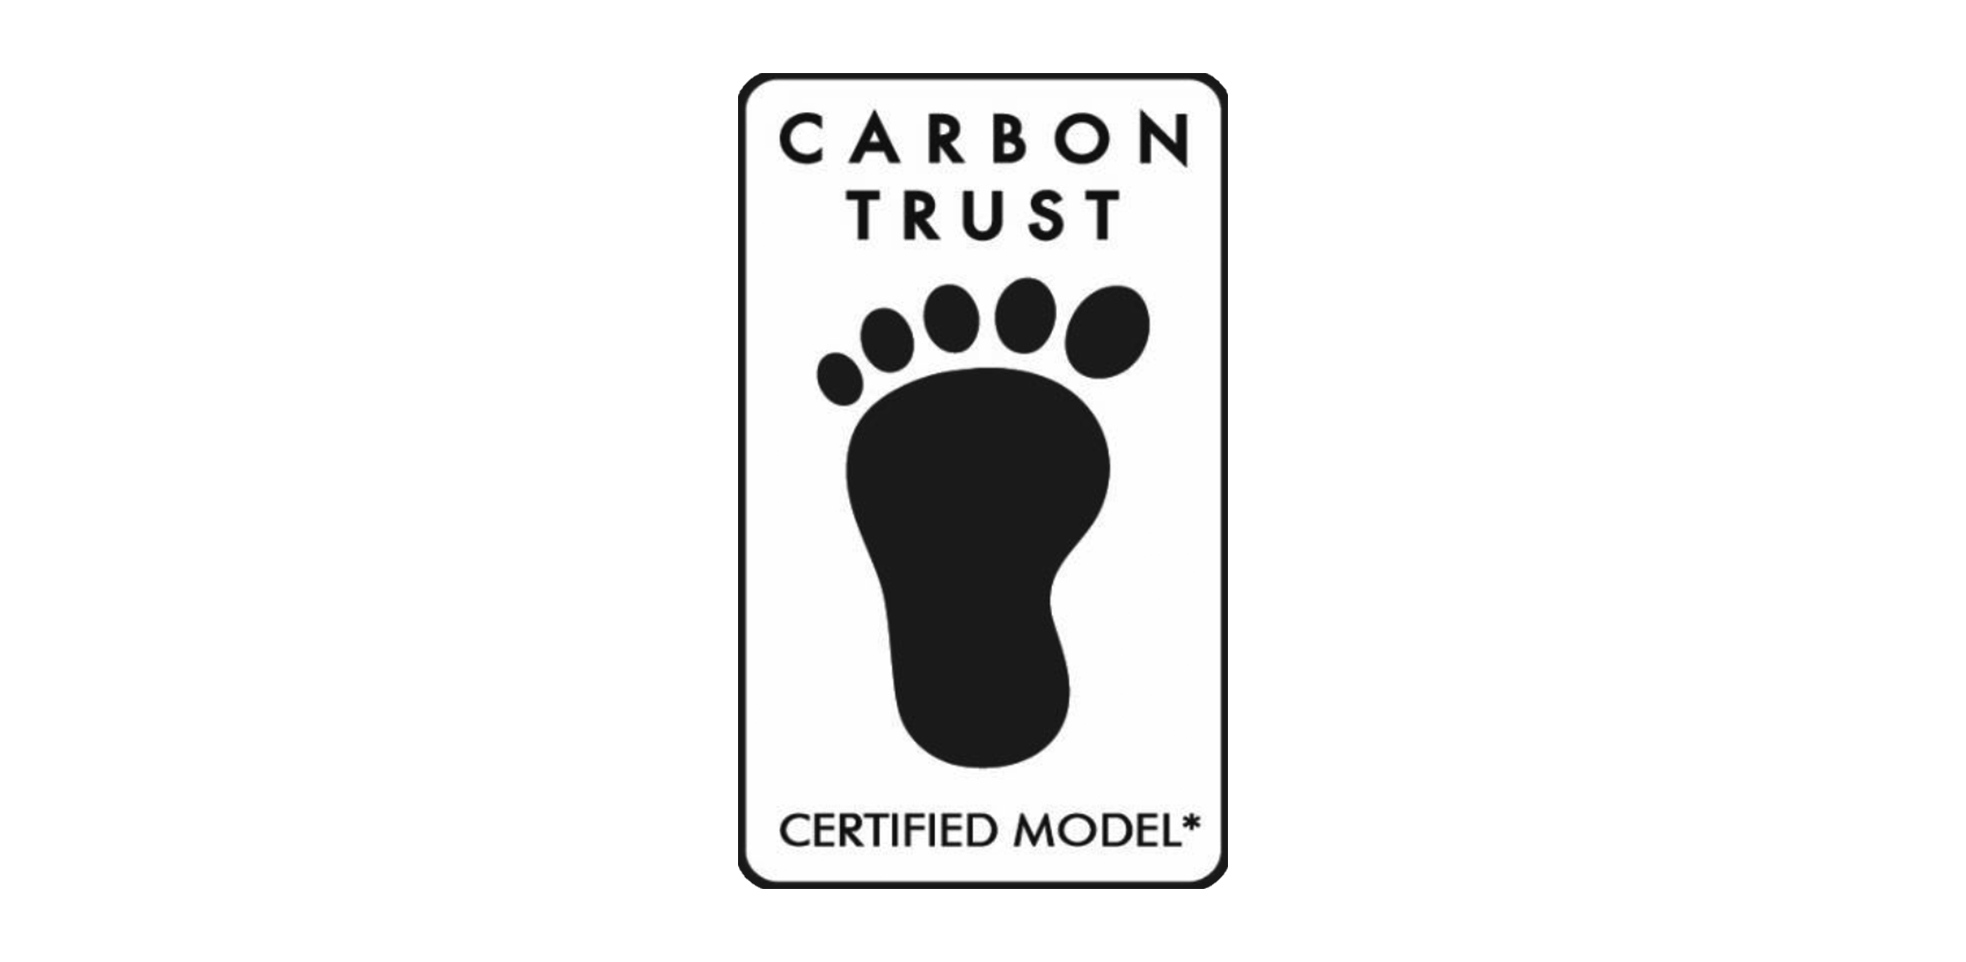 Certification from the Carbon Trust